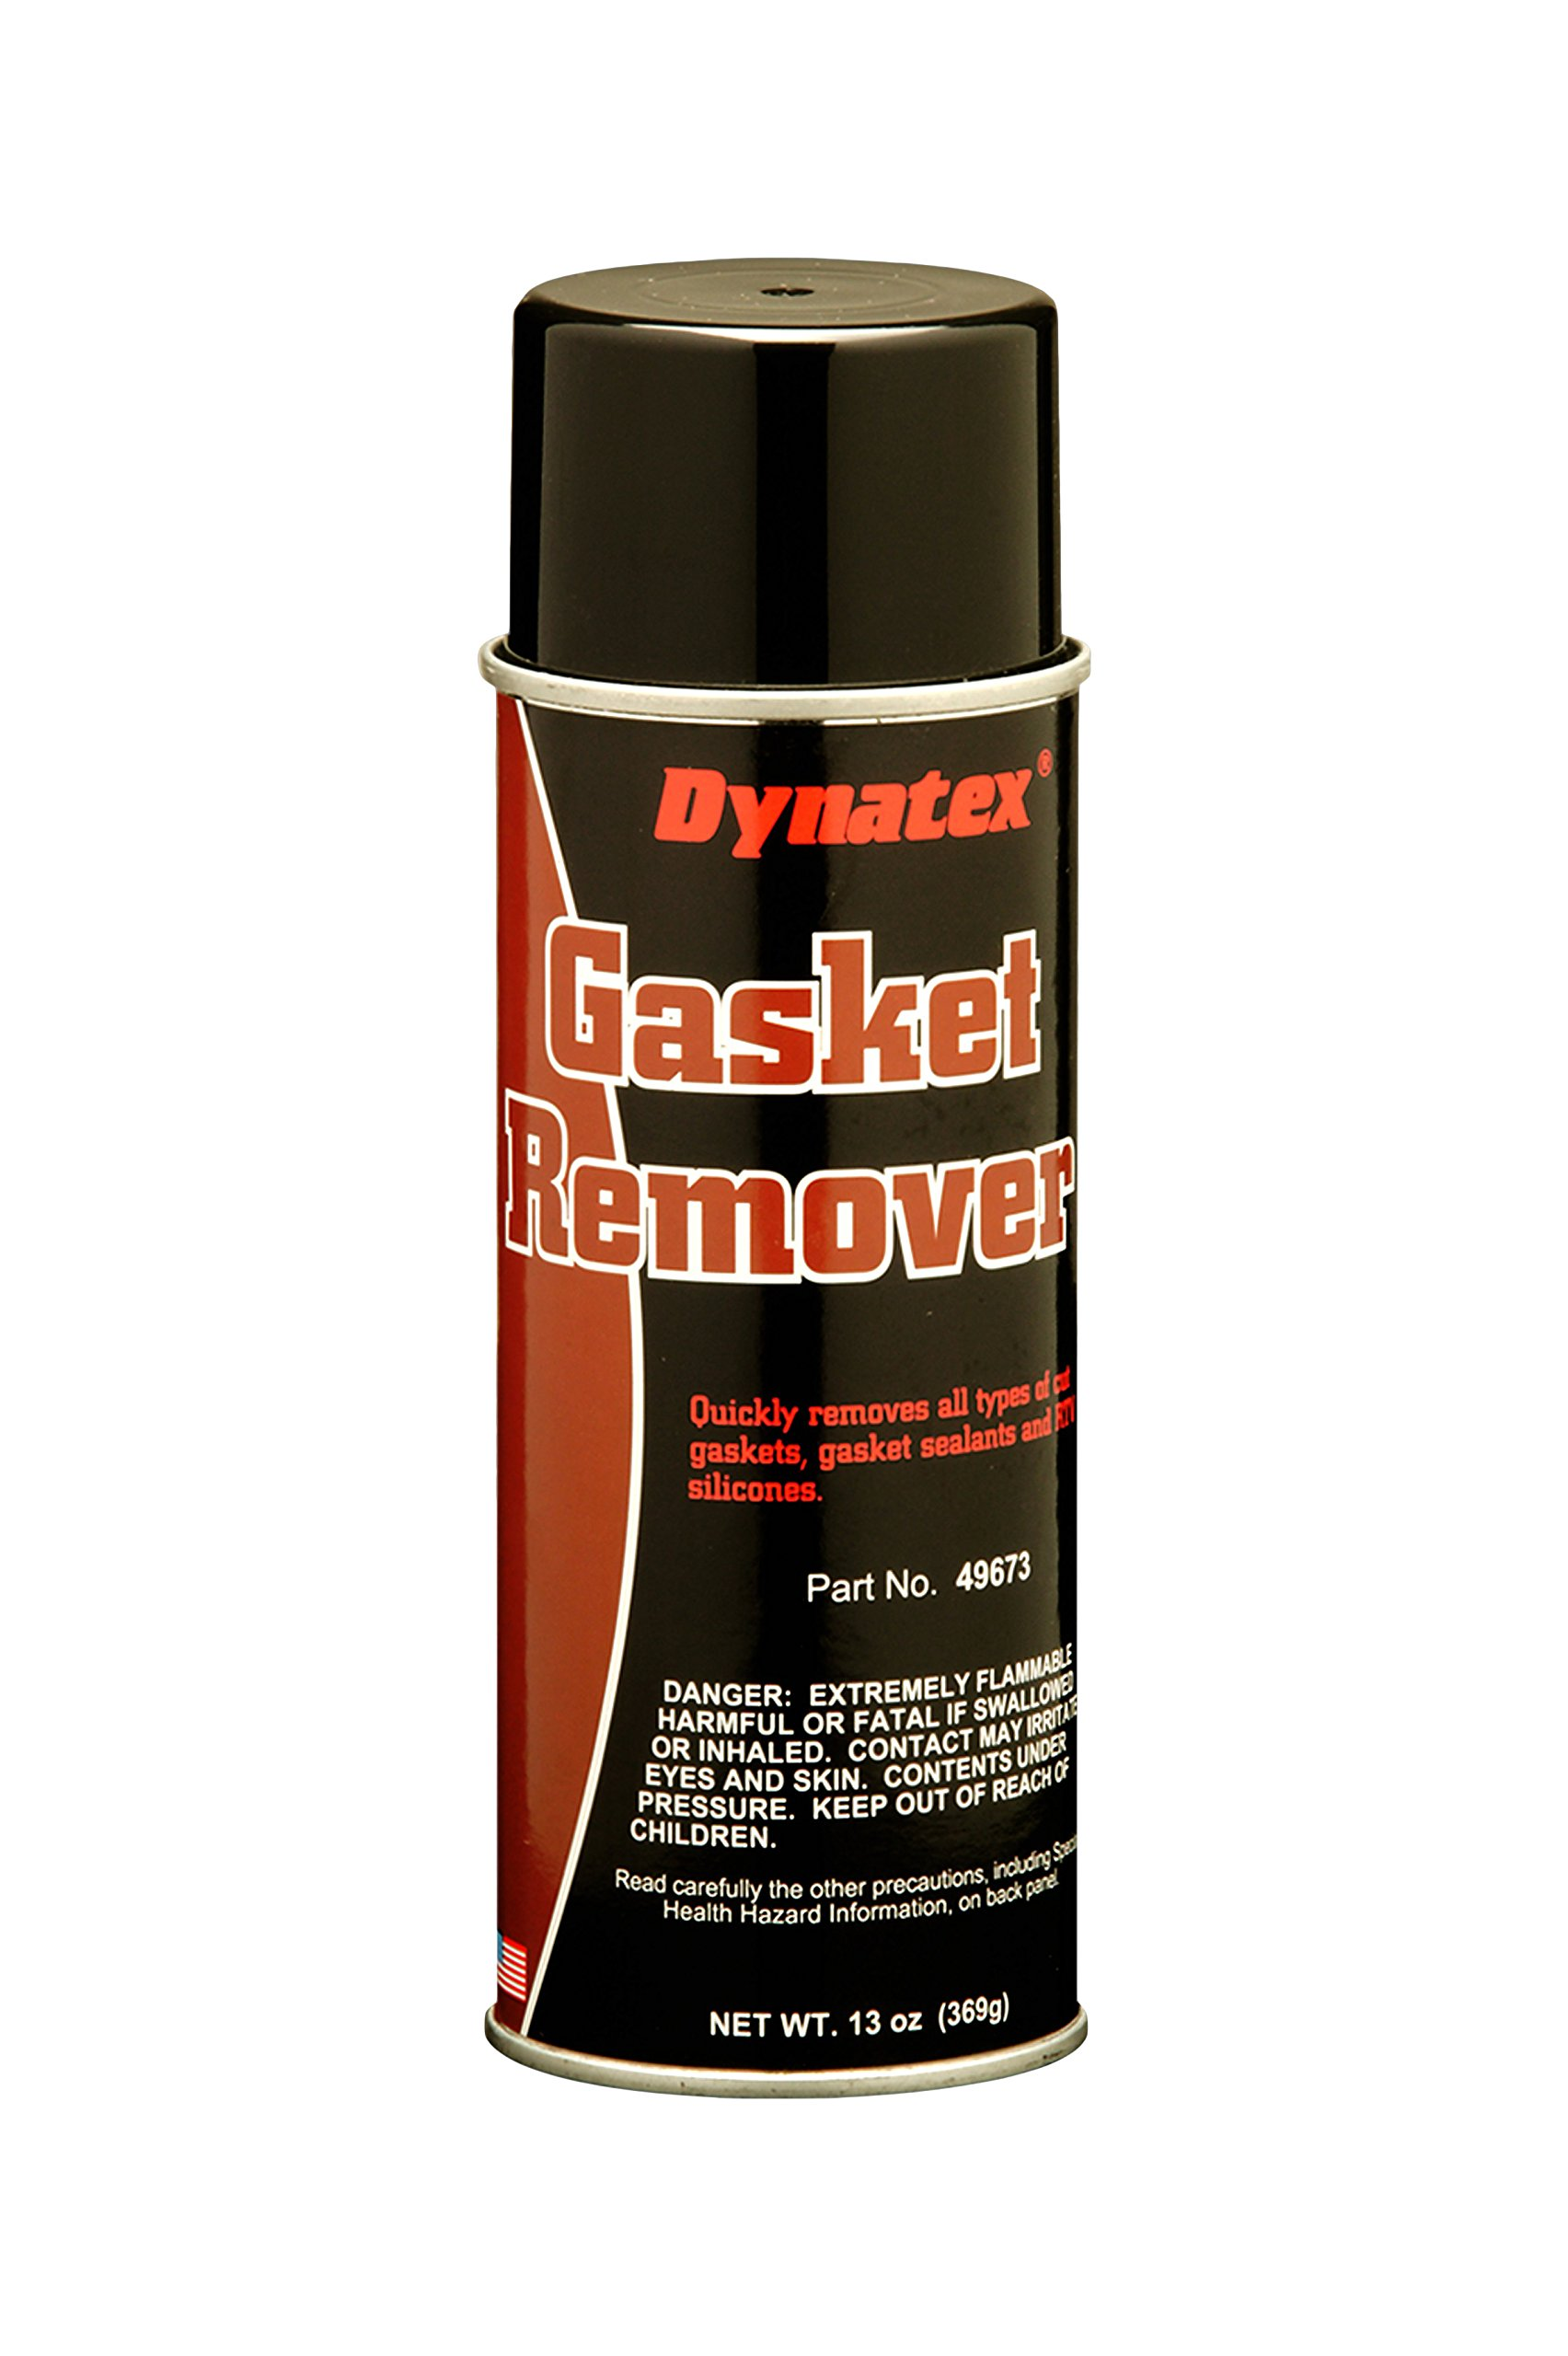 Dynatex 49673 Gasket Remover, 16 oz Aerosol Can, Clear (Pack of 12)